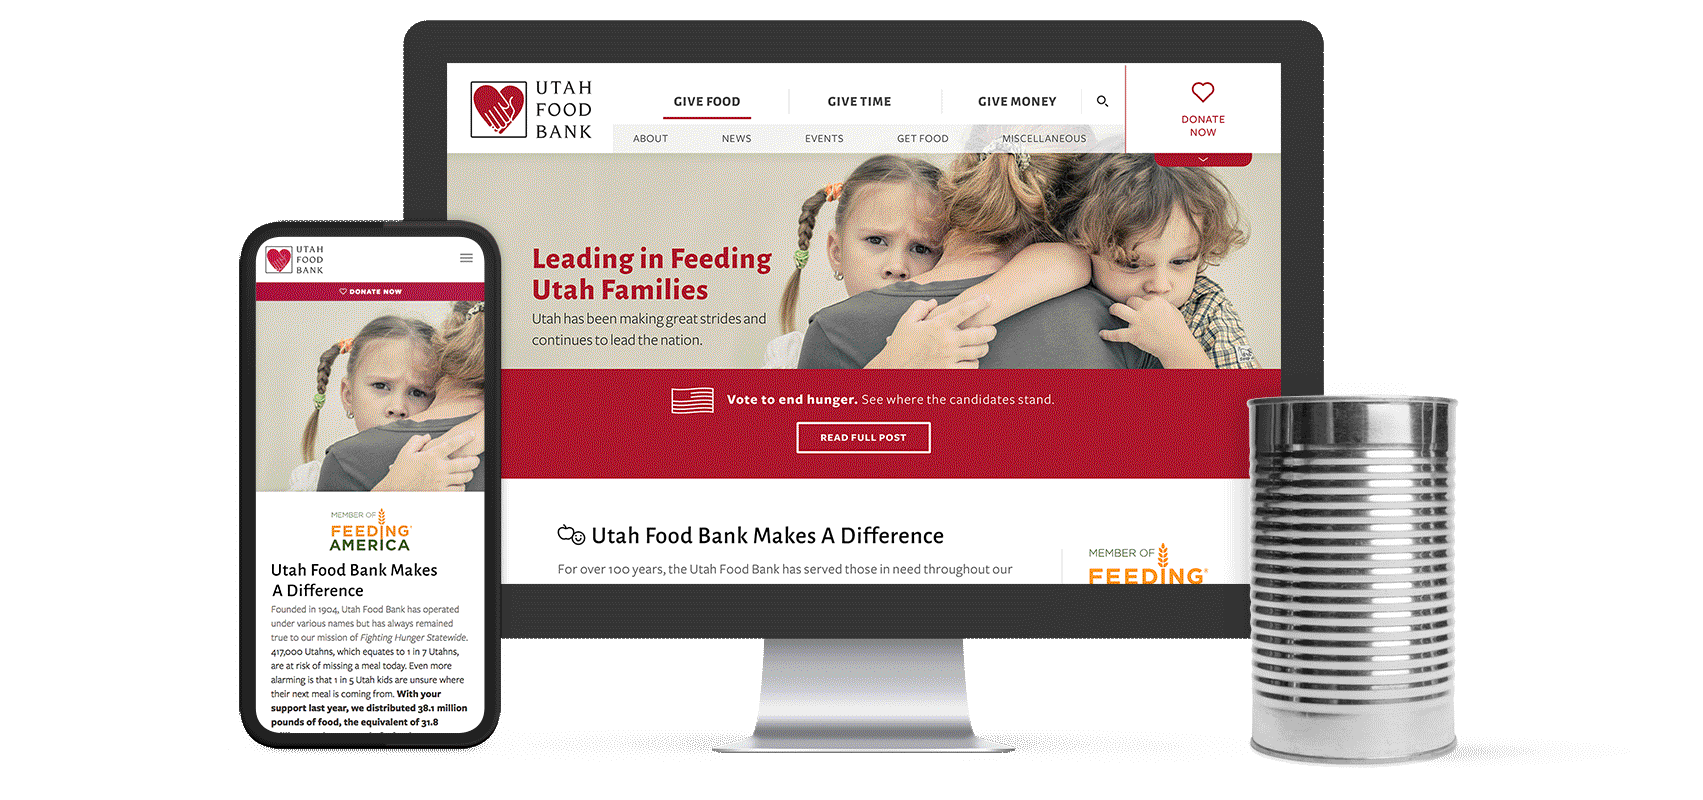 Utah-Food-Bank-Minimalist-Showcase-Project-Presentation-Cropped.png